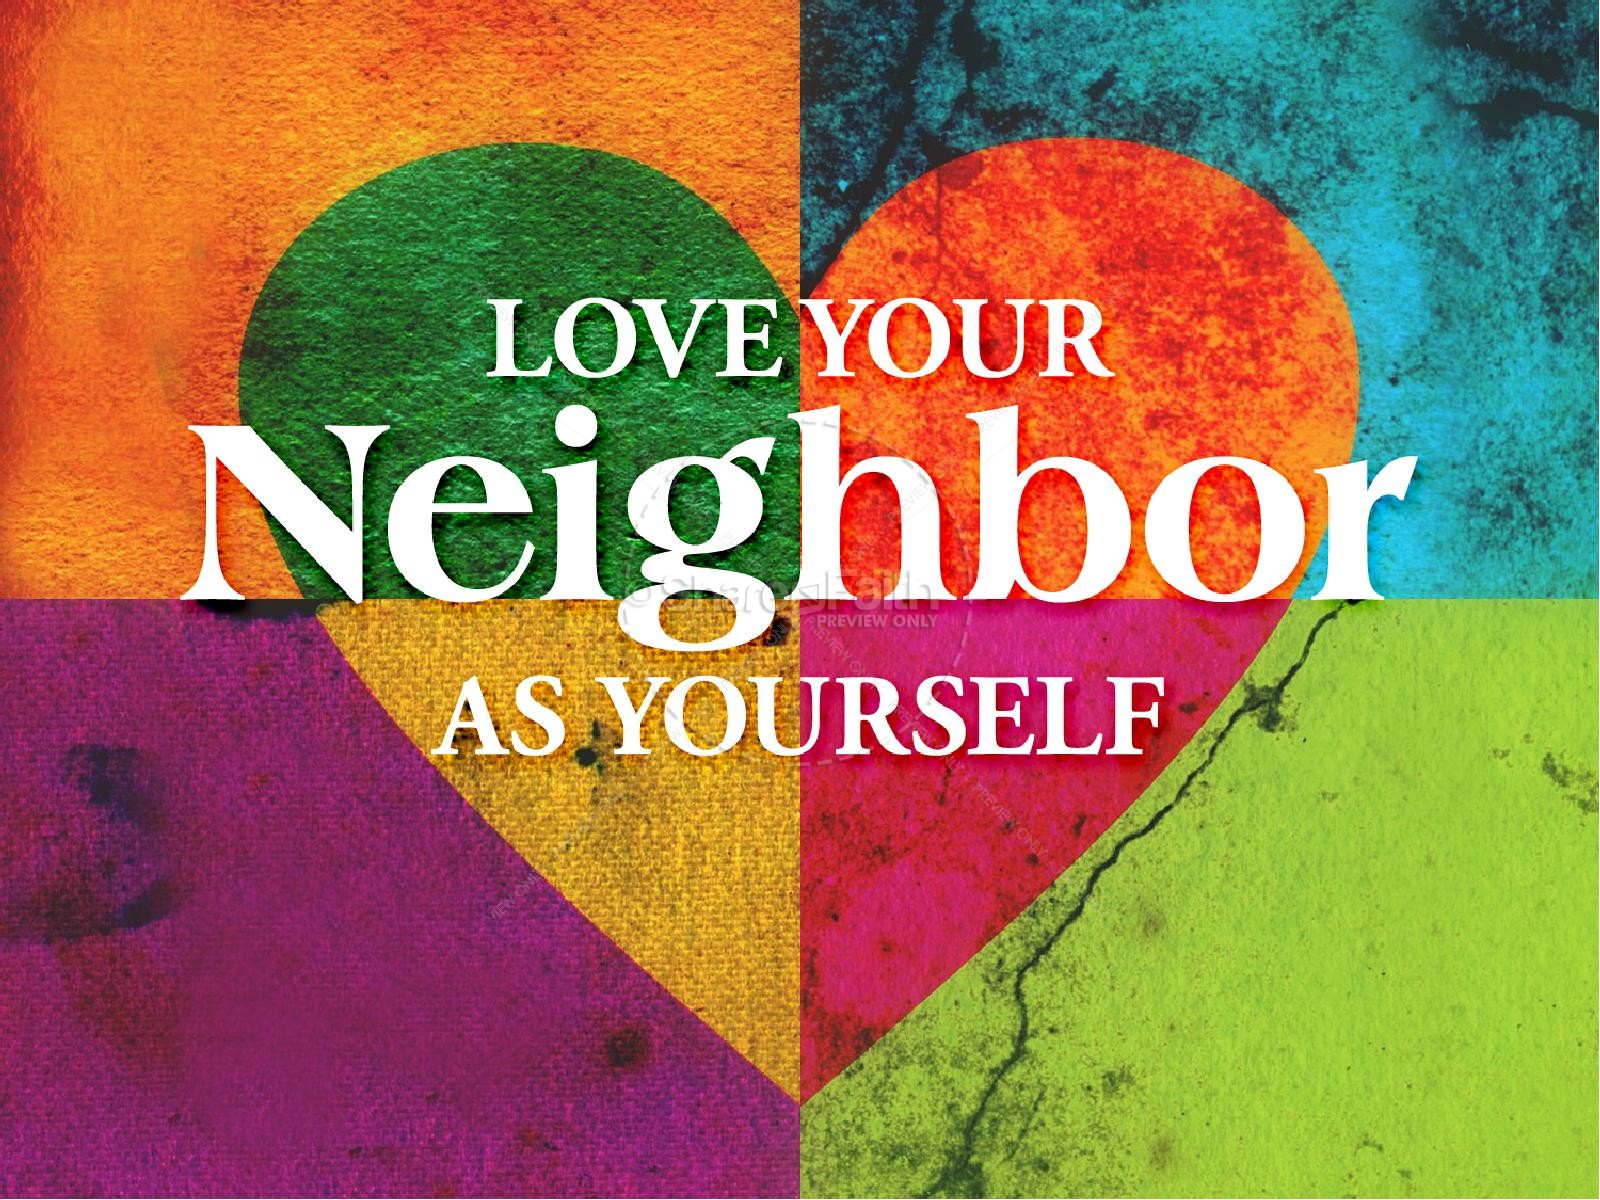 Home church powerpoint templates powerpoint sermons - Love Your Neighbor As Yourself Powerpoint Template